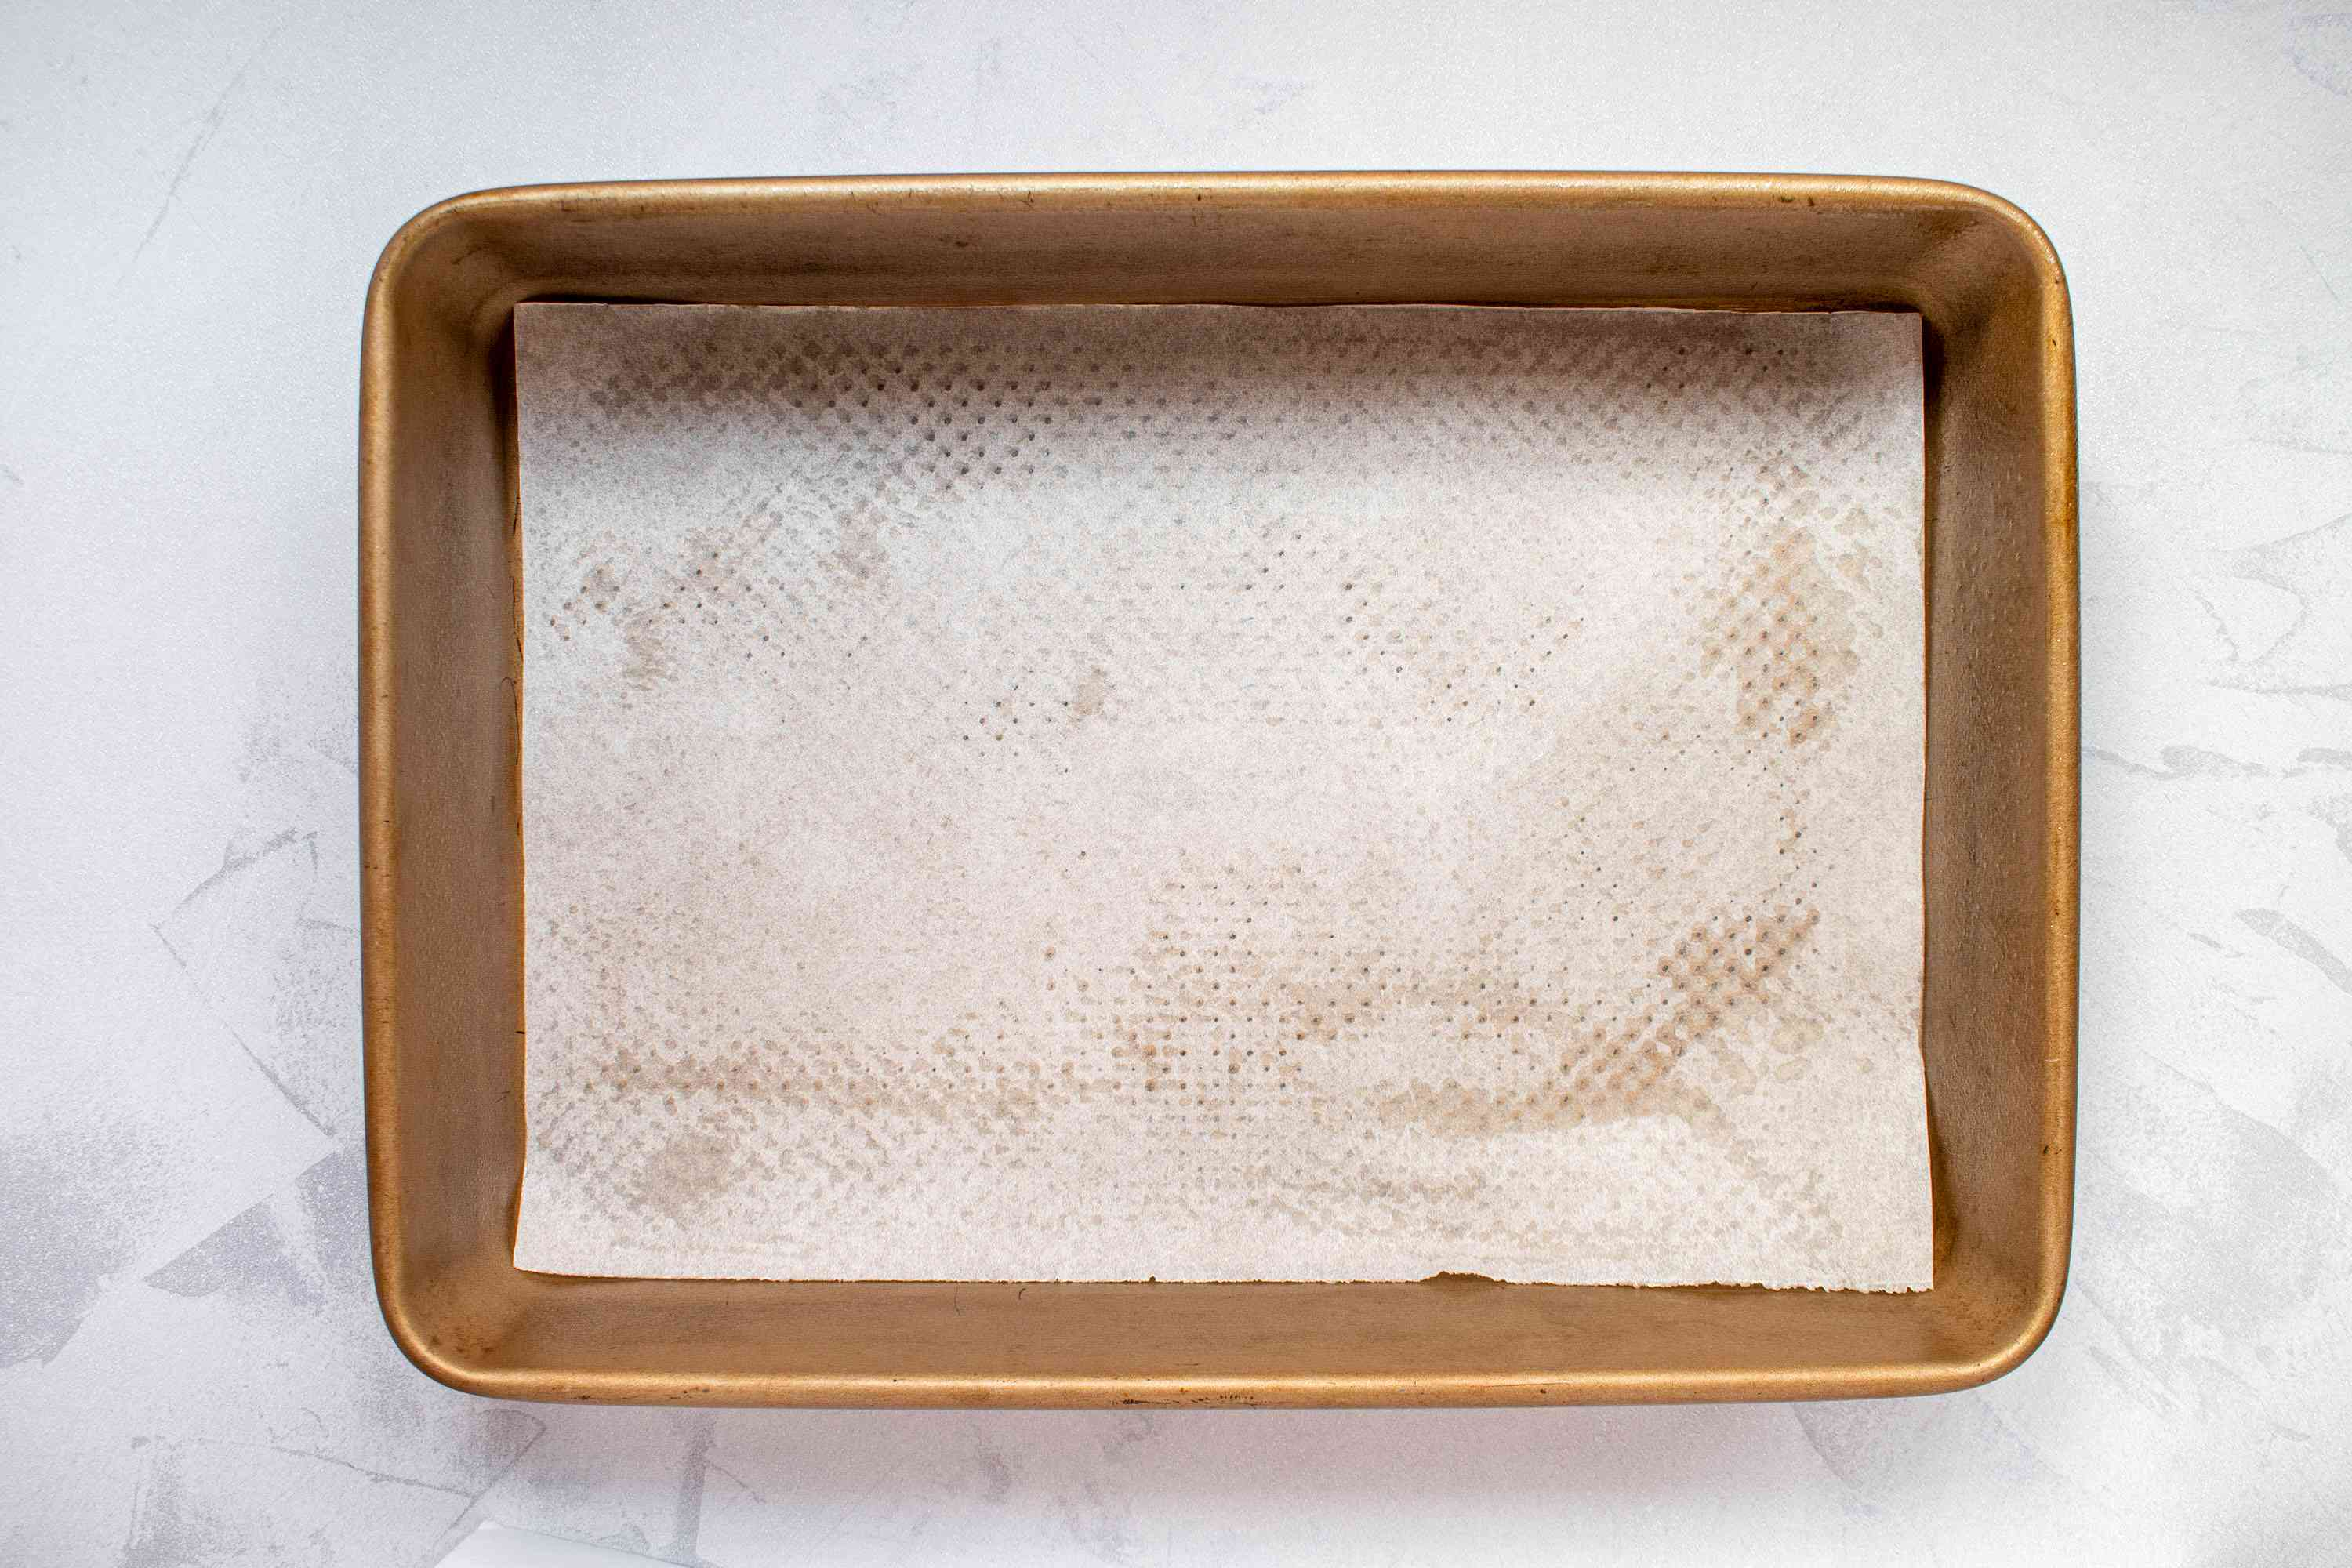 Greased baking pan lined with parchment paper